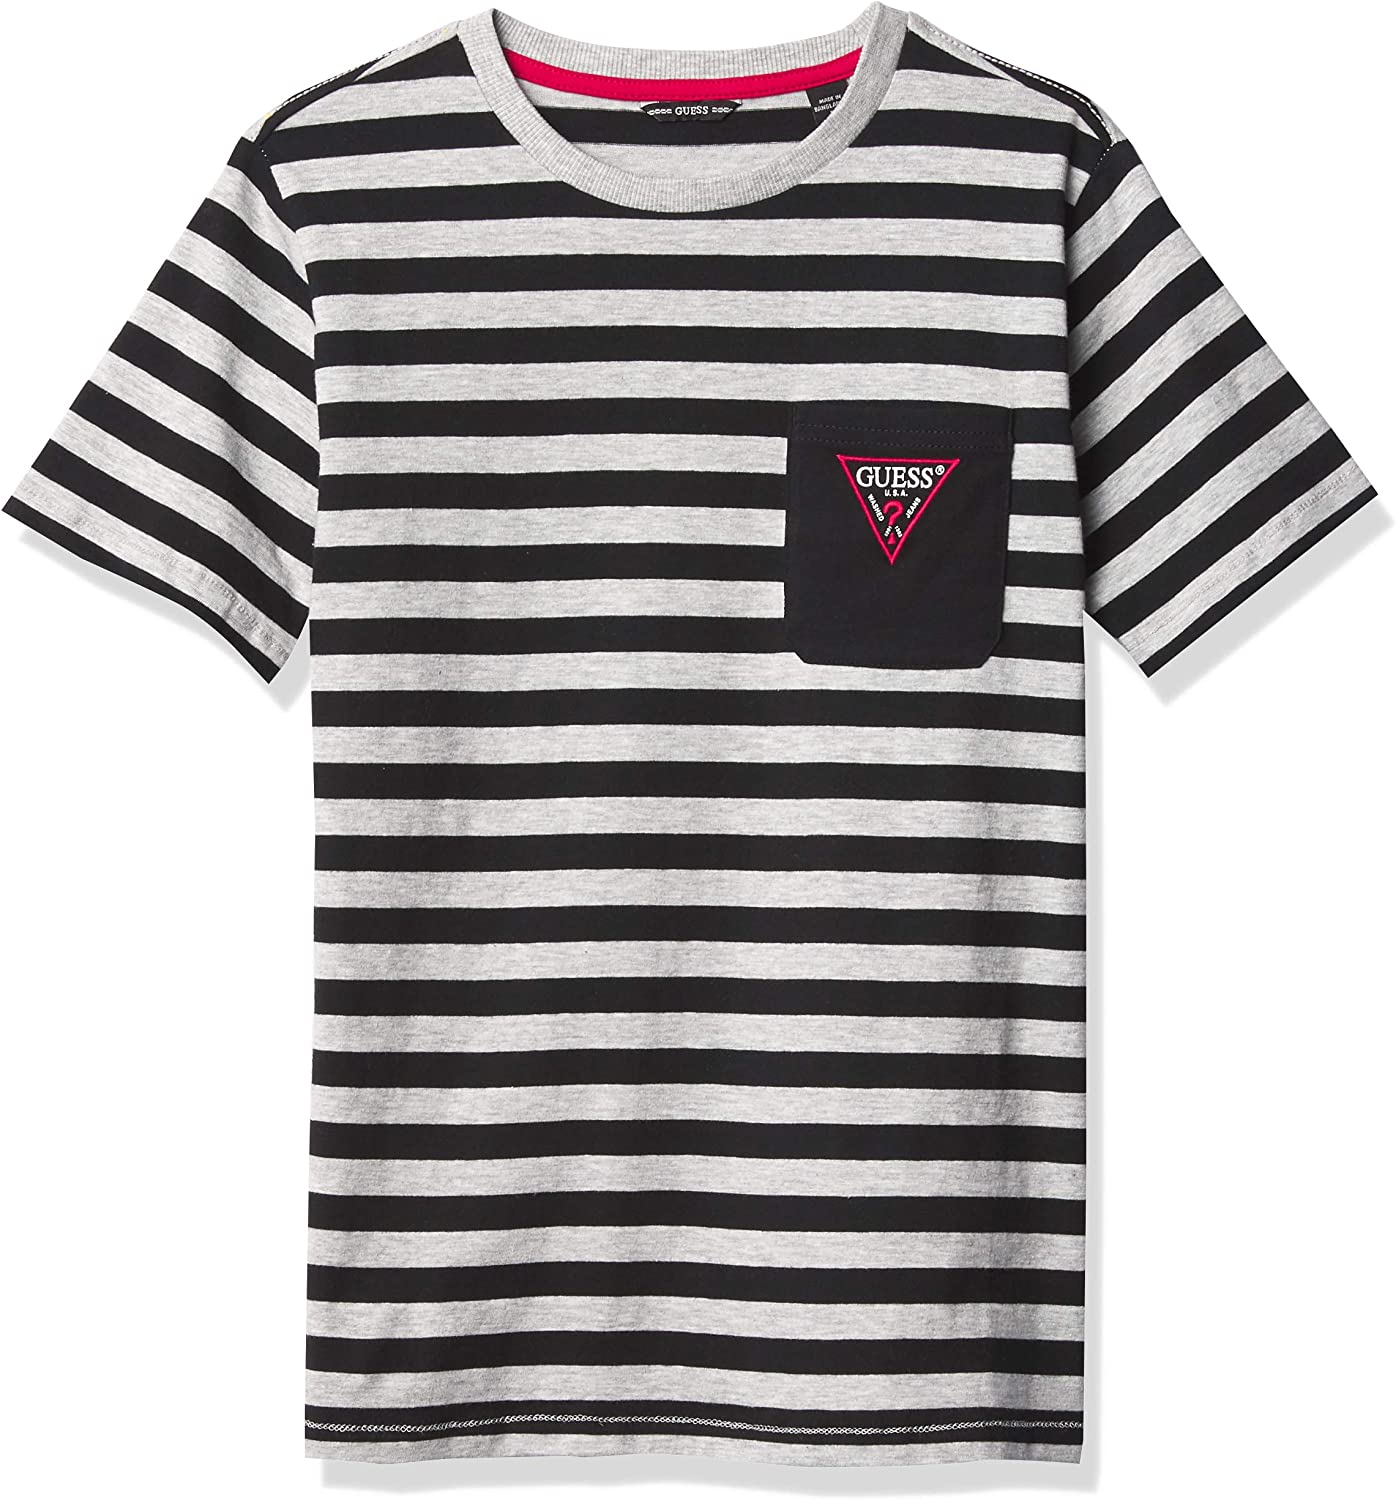 GUESS Boys' Short Sleeve Pocket T-Shirt with Stripes